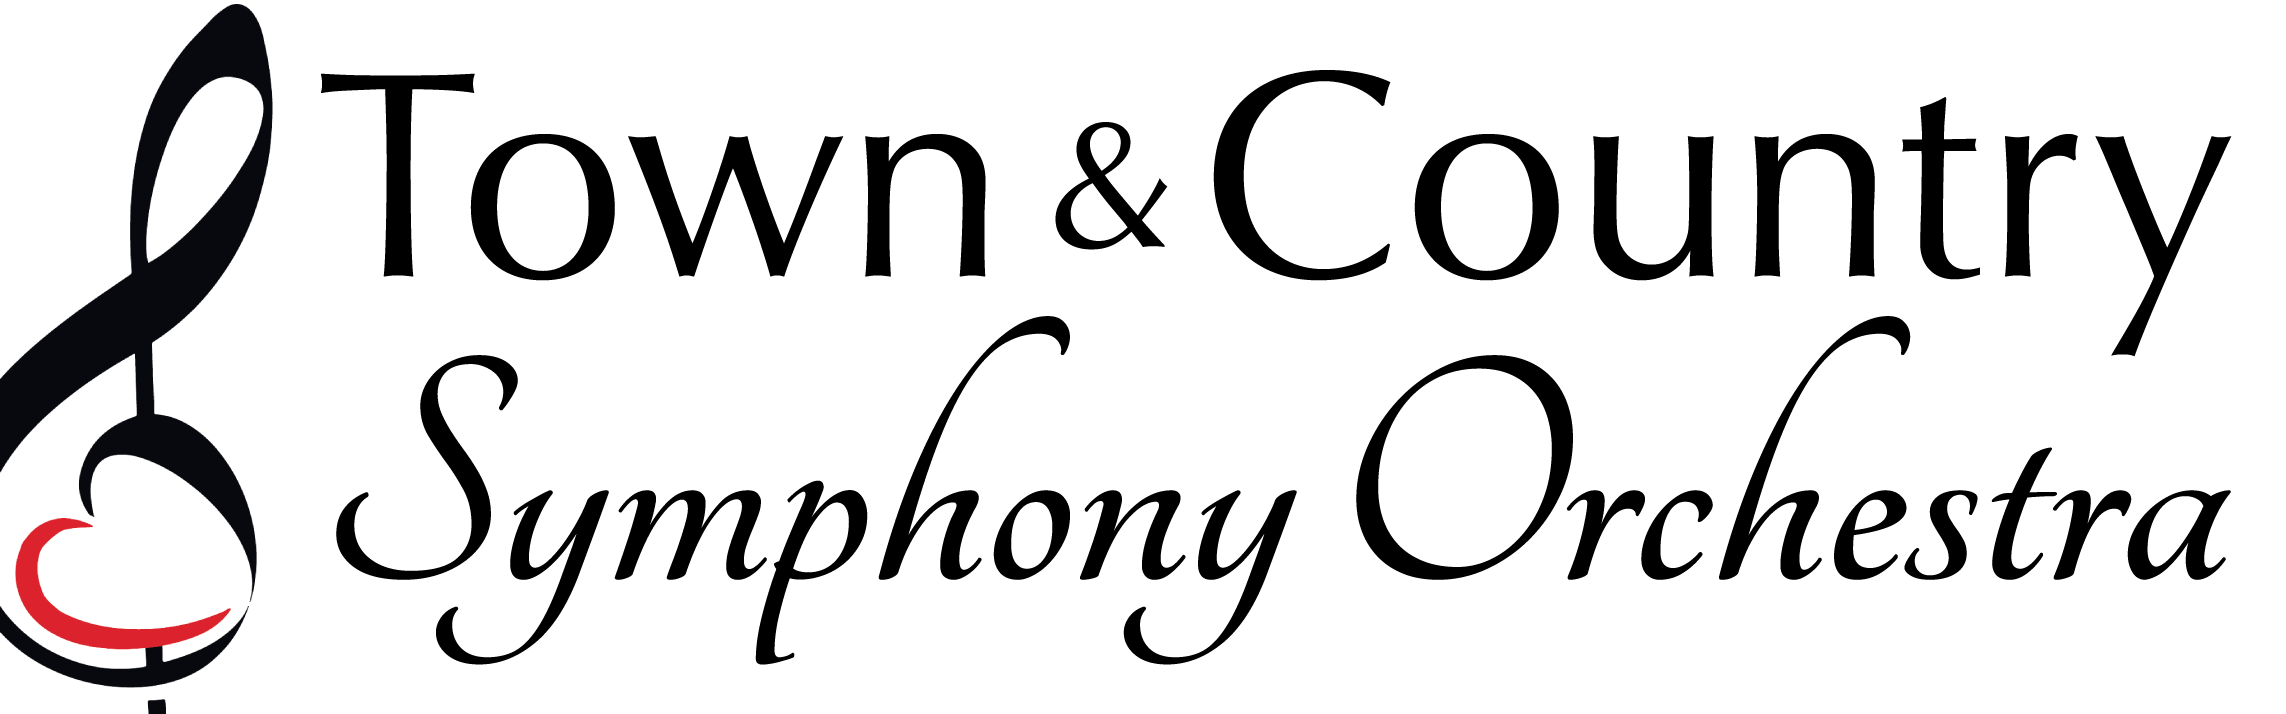 Town and Country Symphony Orchestra | Community orchestra free